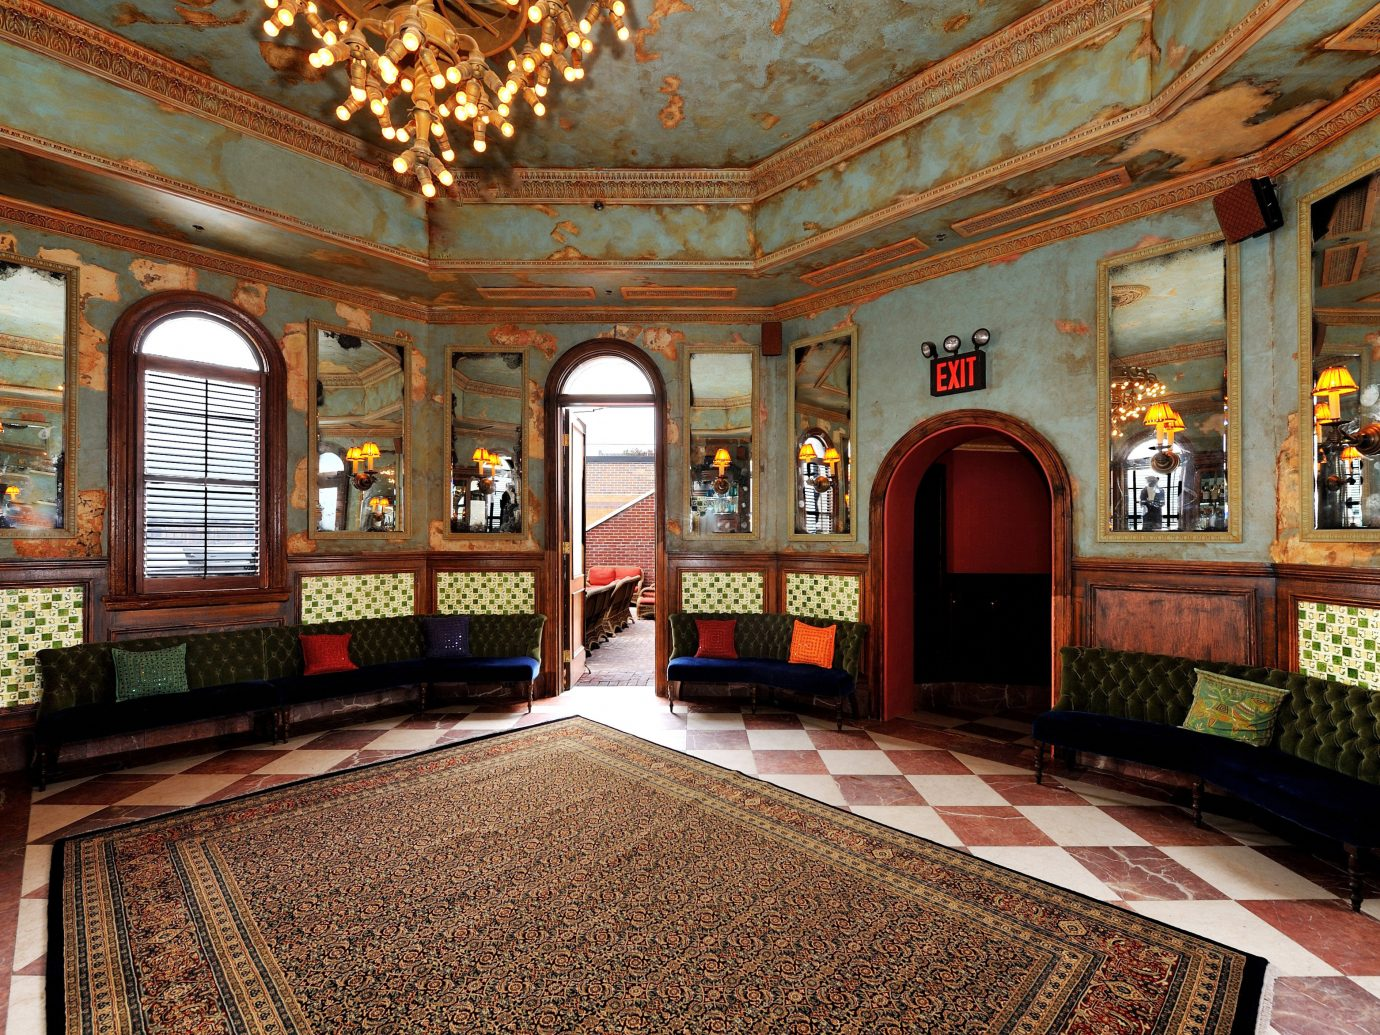 Trip Ideas indoor floor Lobby estate building ceiling palace mansion interior design chapel tourist attraction ballroom synagogue theatre hall furniture